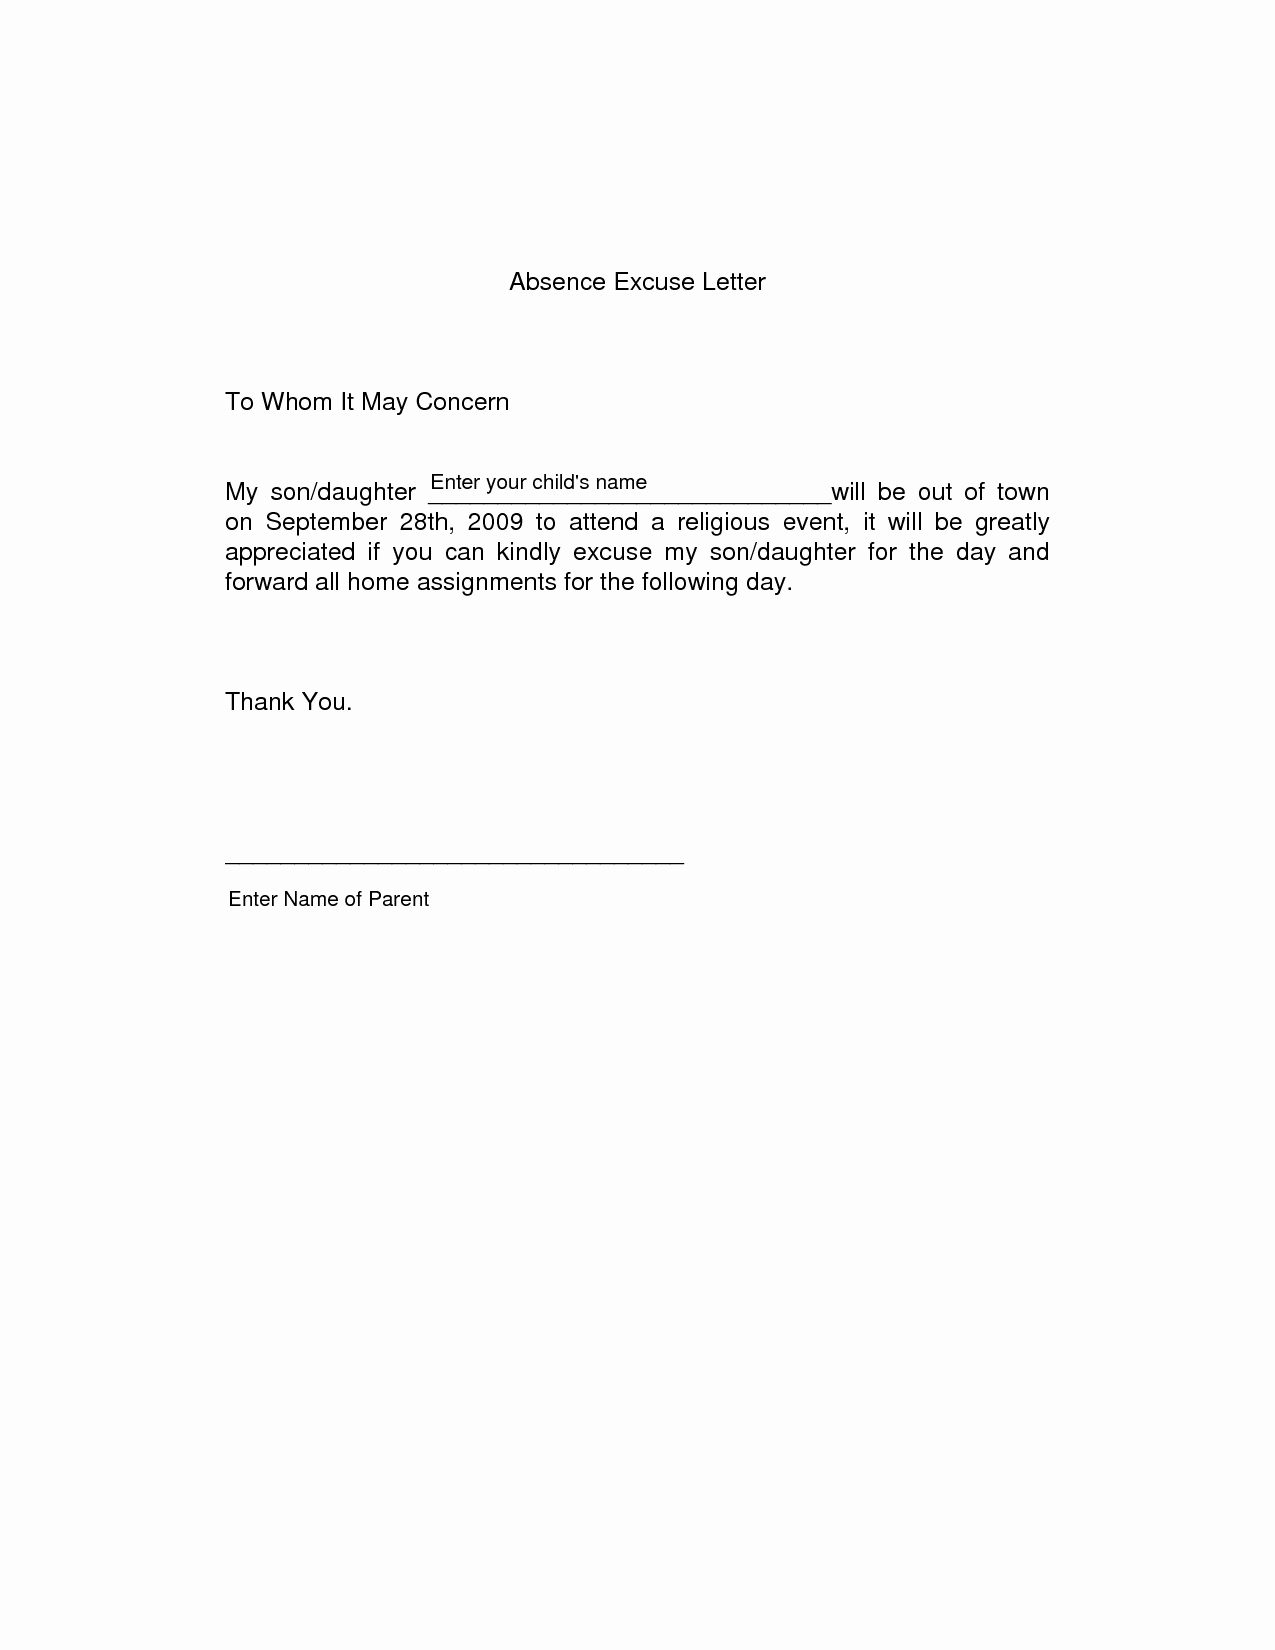 School Note for Being Absent Awesome format Excuse Letter for Being Absent Best Template